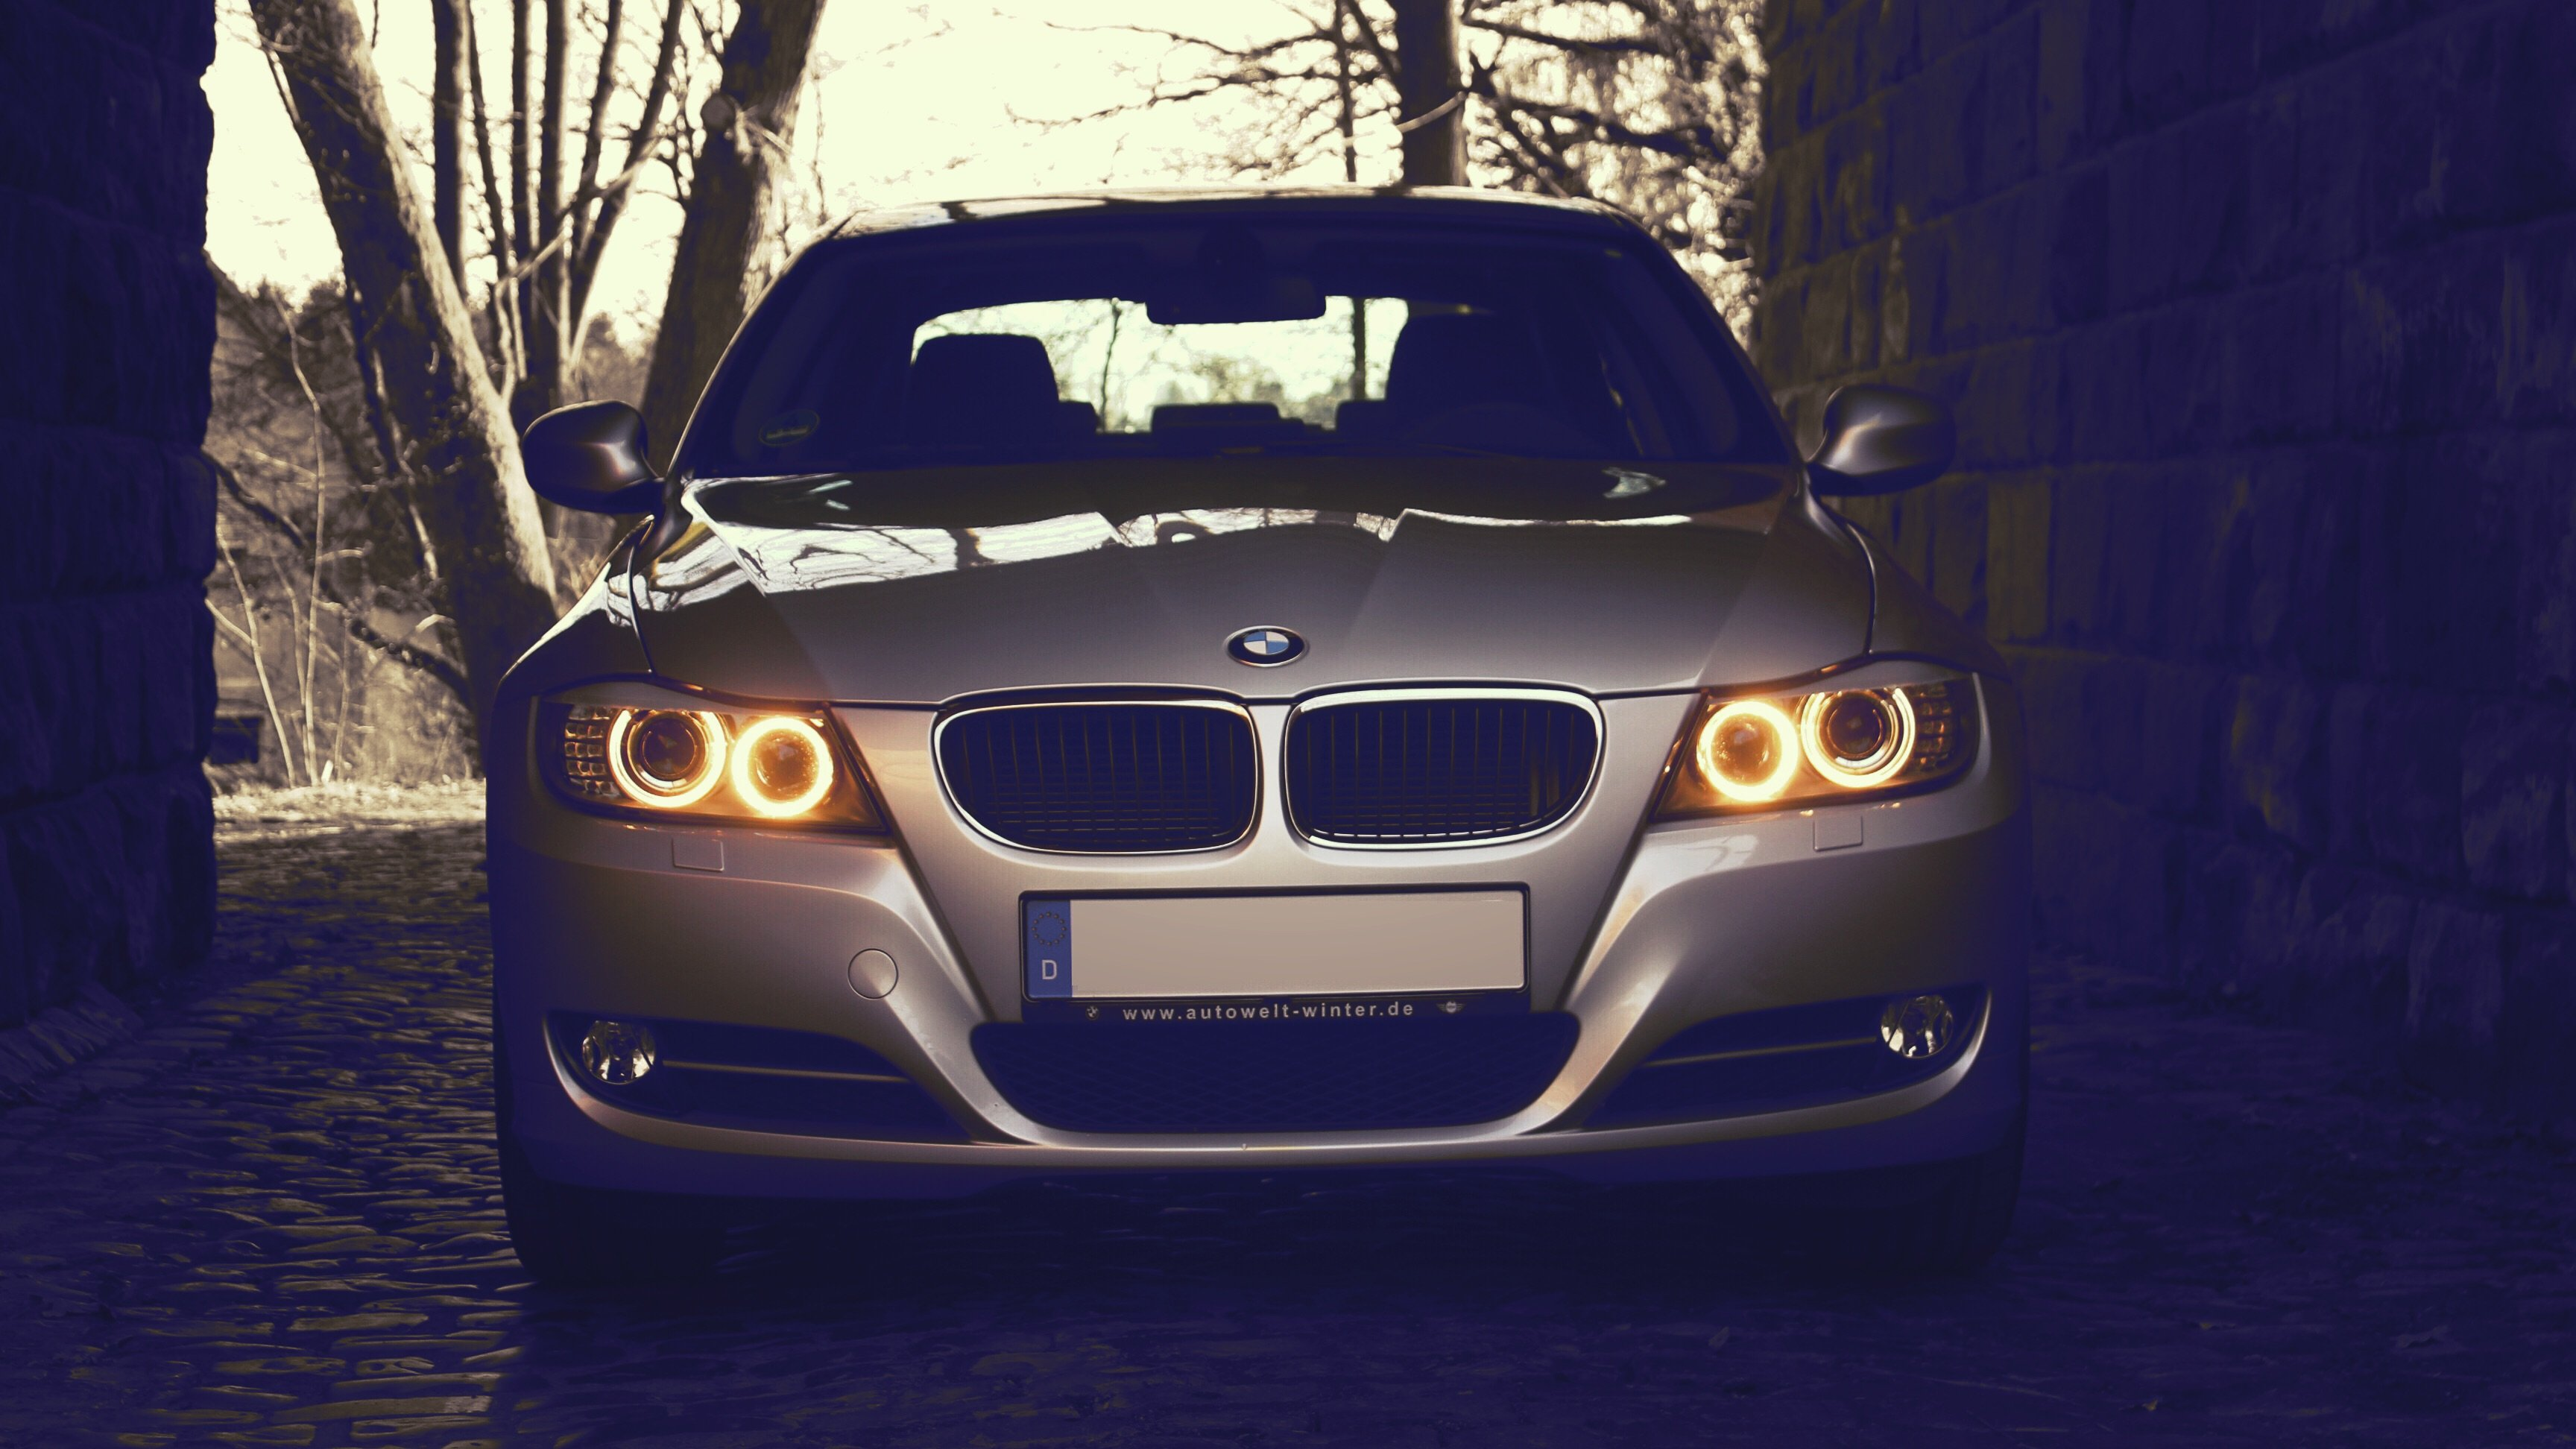 BMW Series E90 wallpaper